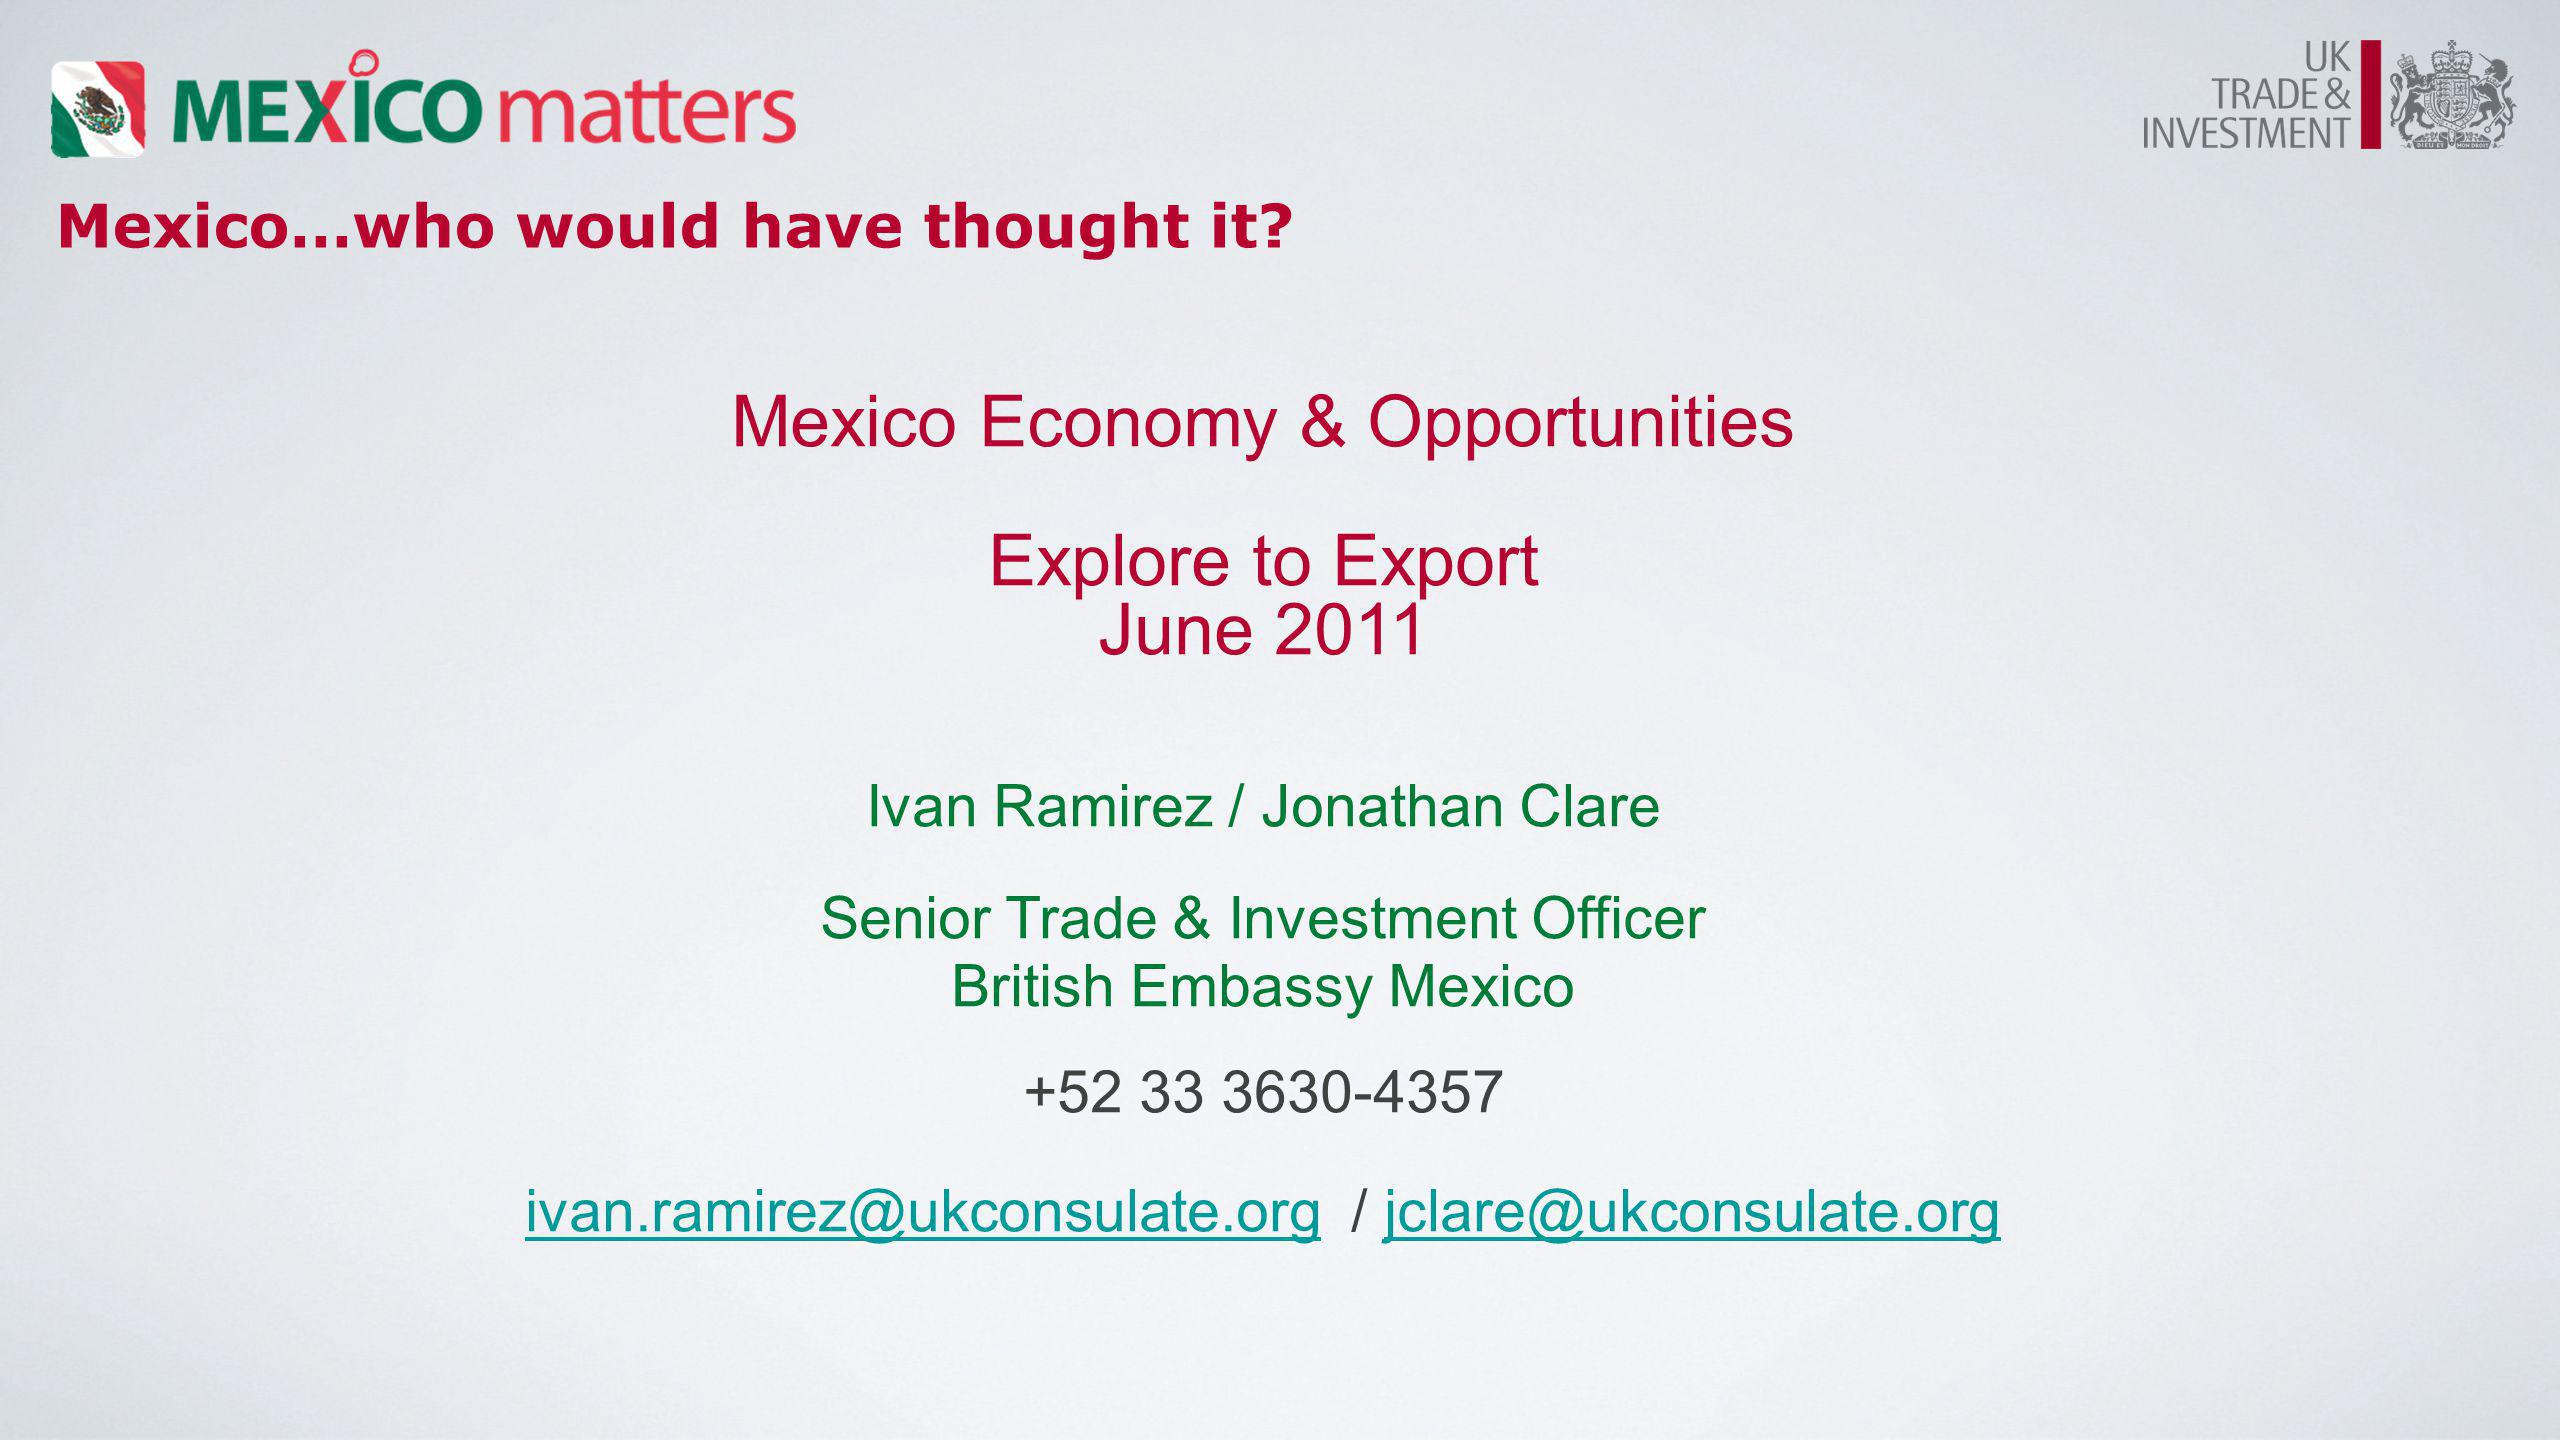 Mexico…who would have thought it? Mexico Economy & Opportunities Explore to Export June 2011 Ivan Ramirez / Jonathan Clare Senior Trade & Investment O